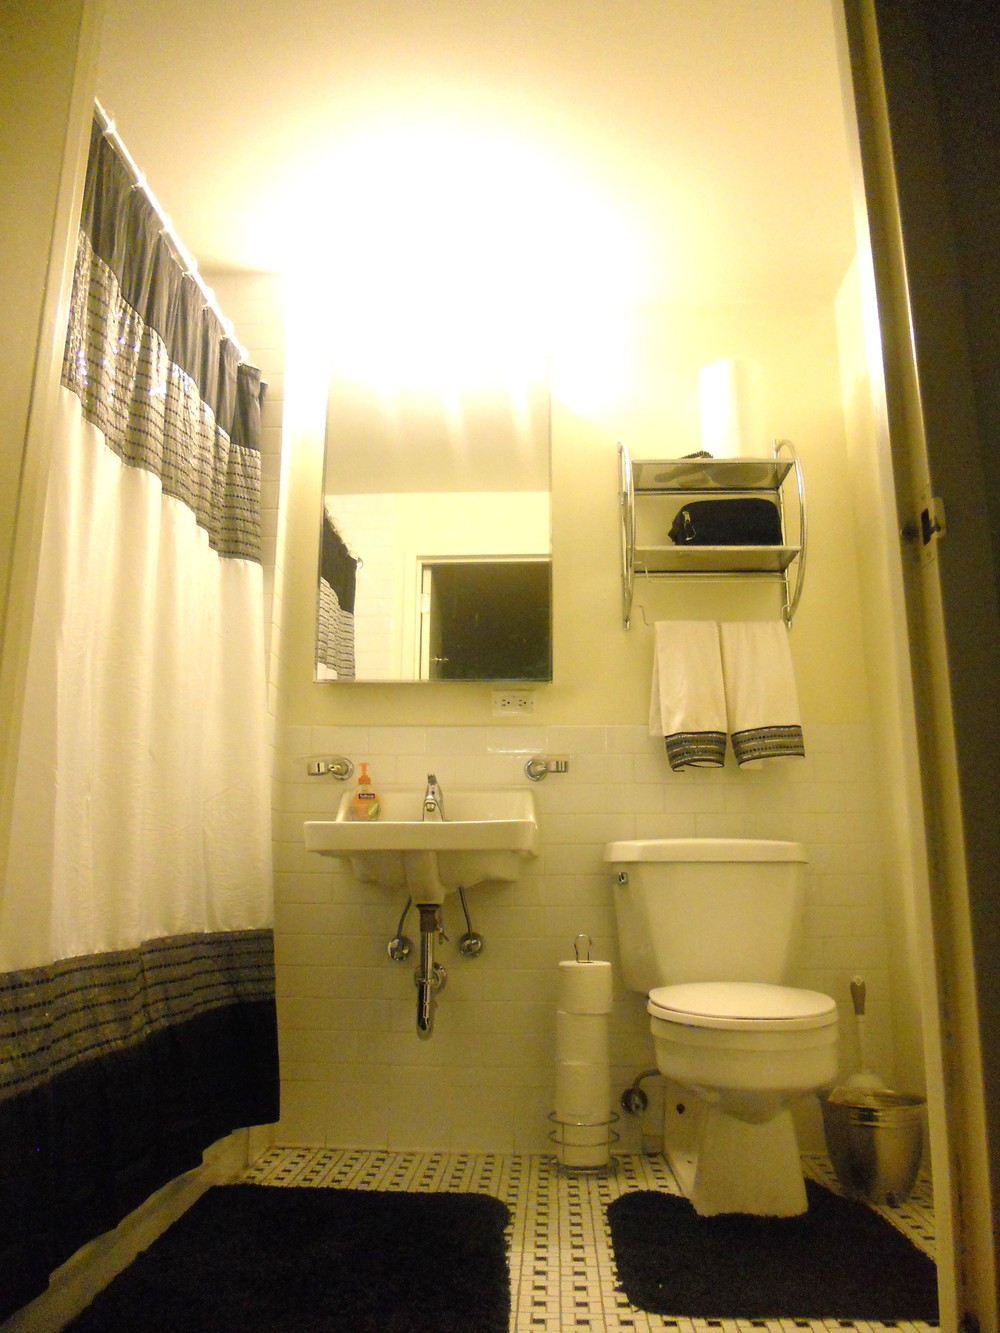 apt- bathroom.jpg